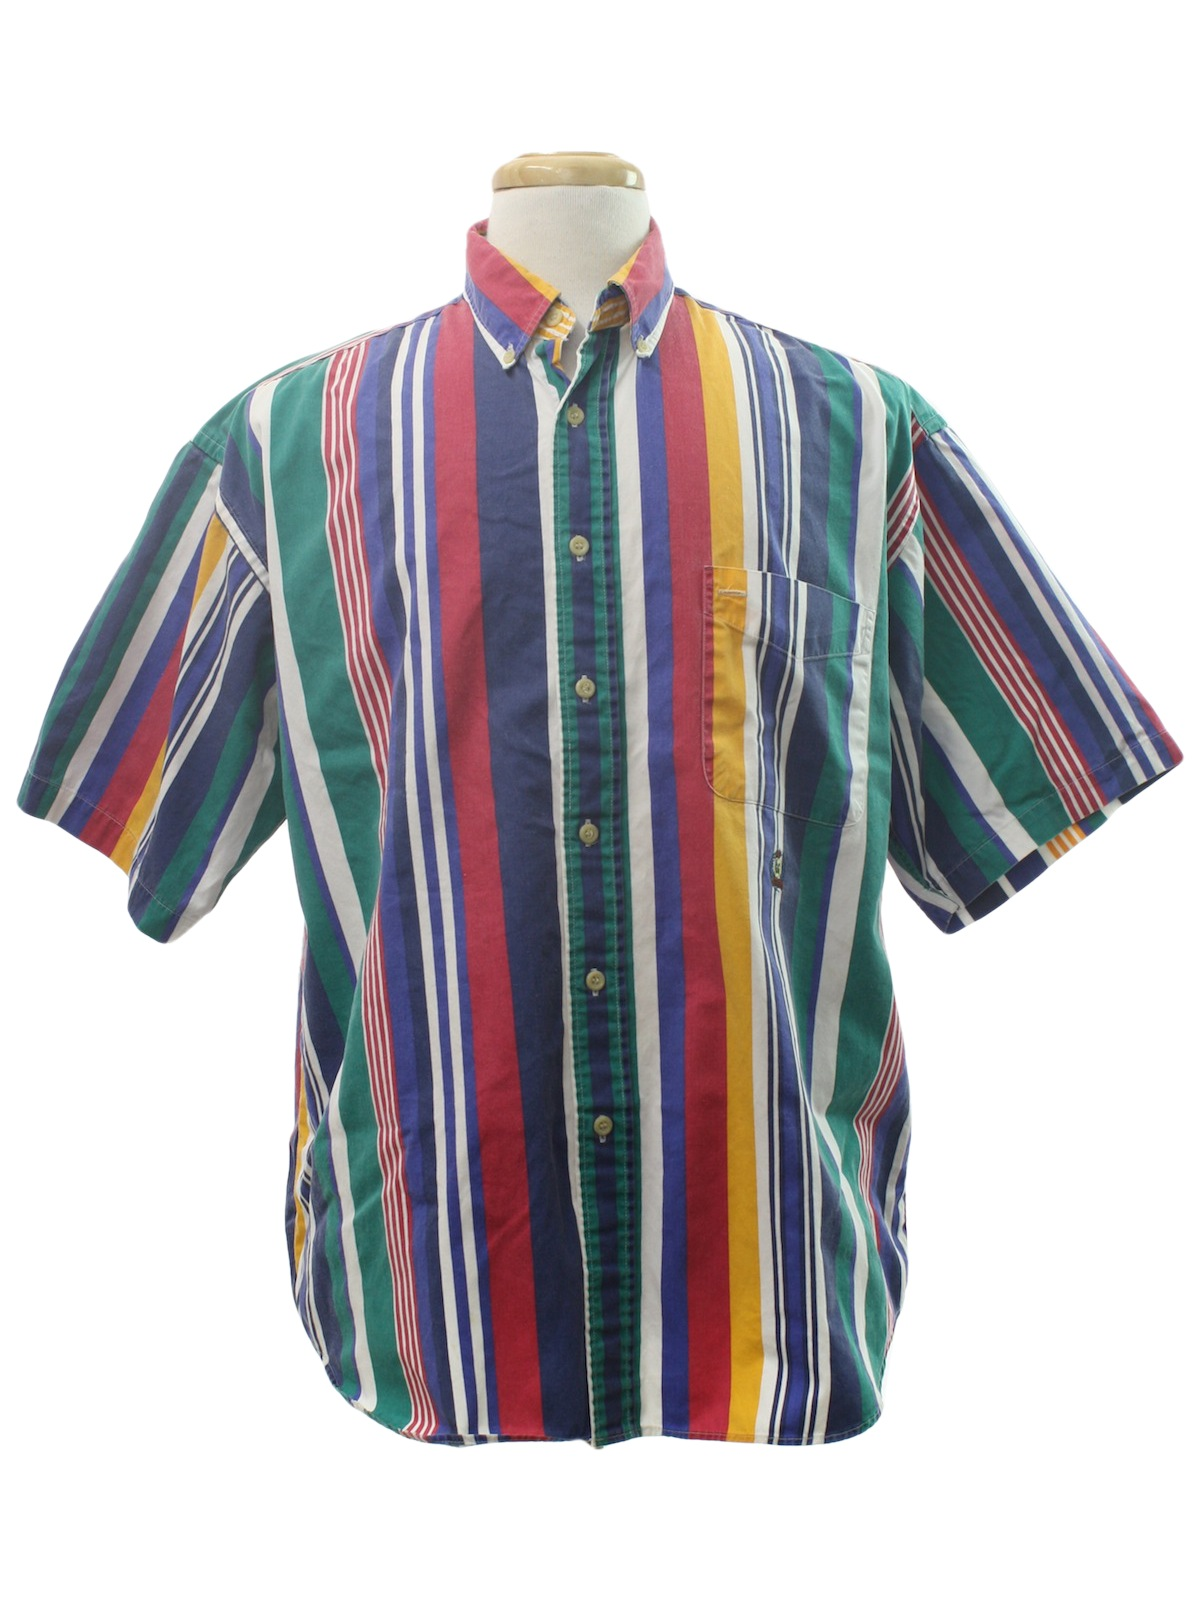 a547f038c Vintage 1980's Shirt: 80s -Good Guys- Mens multi colored background cotton  cuffless short sleeve button up front print shirt with vertical stripes in  green, ...